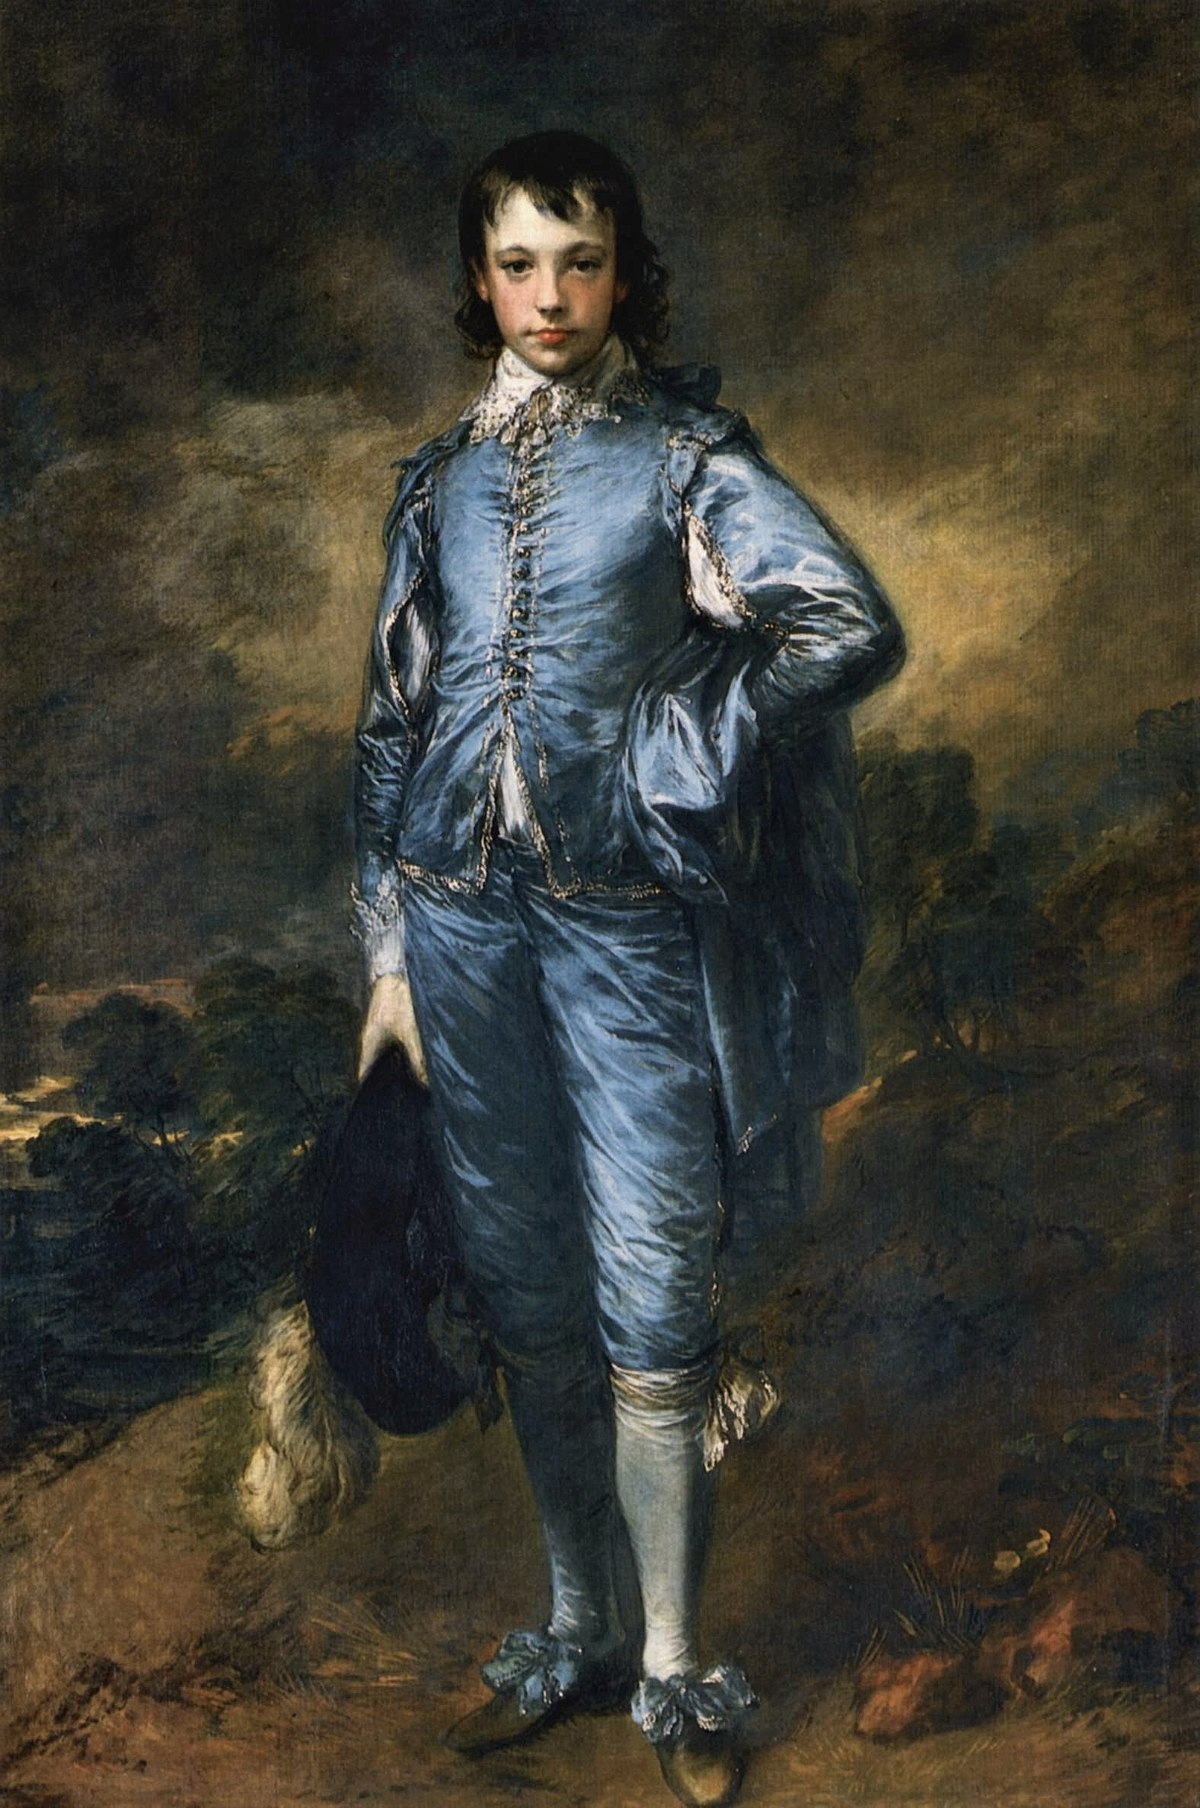 Thomas Gainsborough. Blue boy, hacia 1770